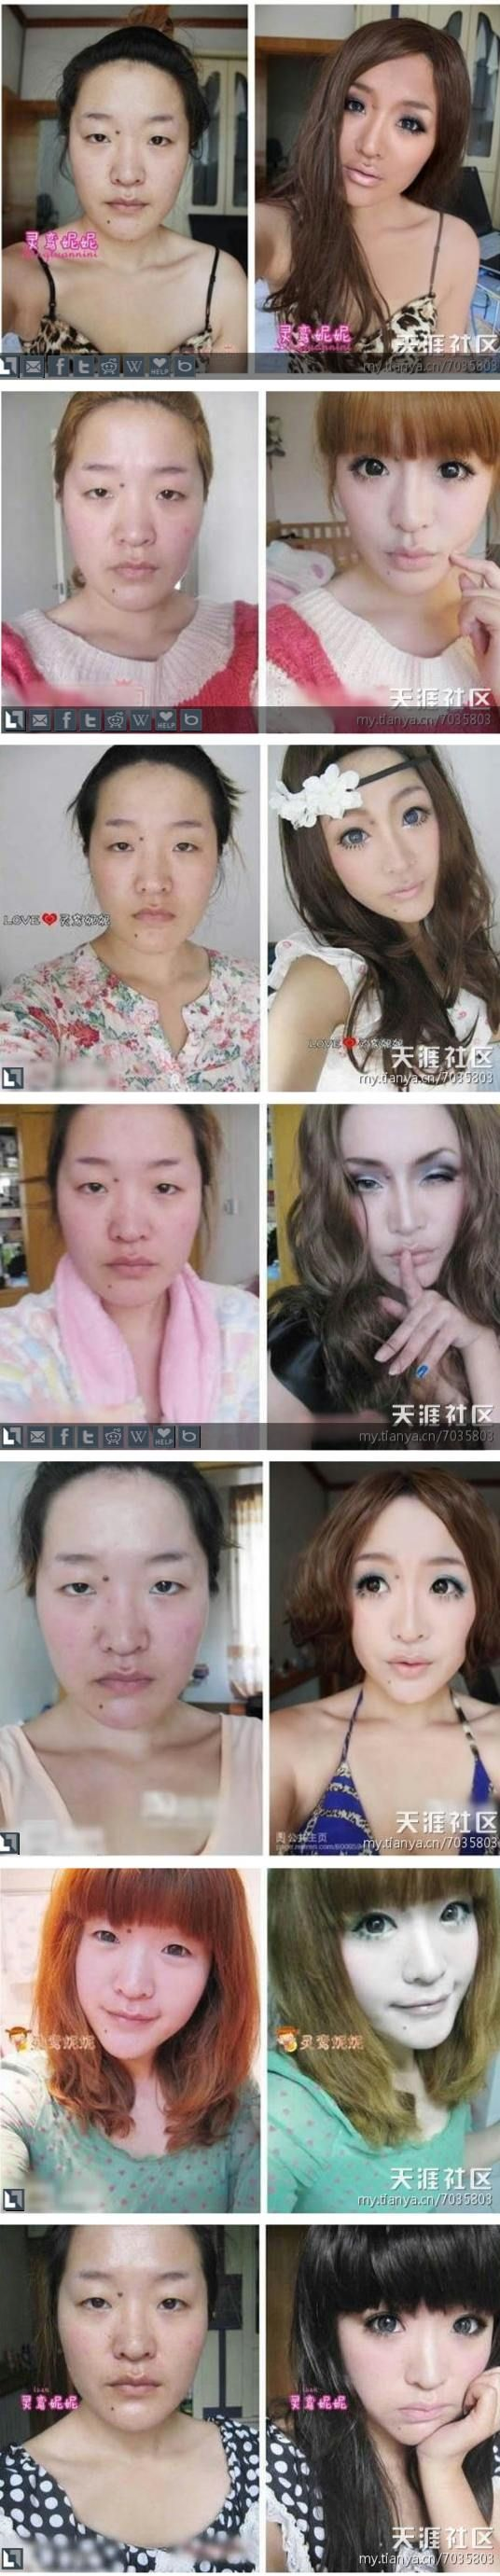 One girl turns herself into many girls after changing her hair and make up. wtf.